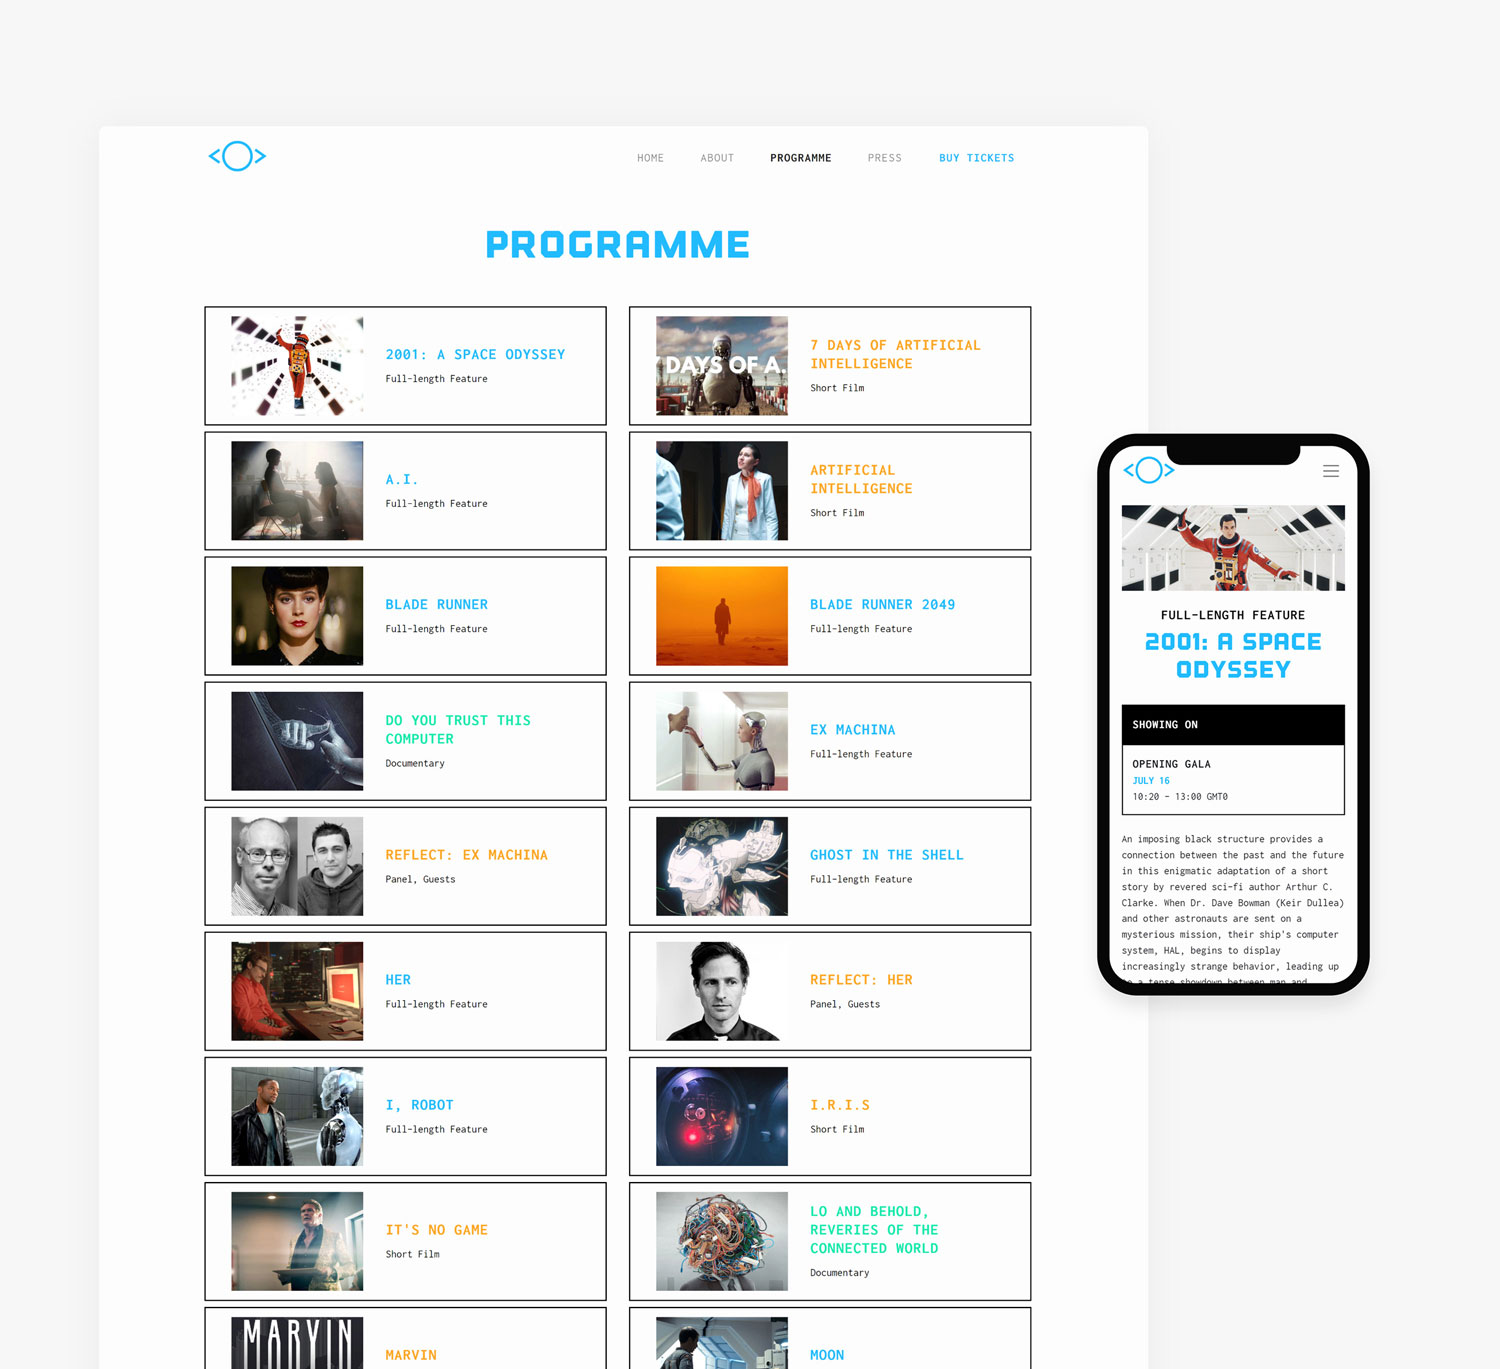 ACT IV Website Programme on Desktop and one program on mobile